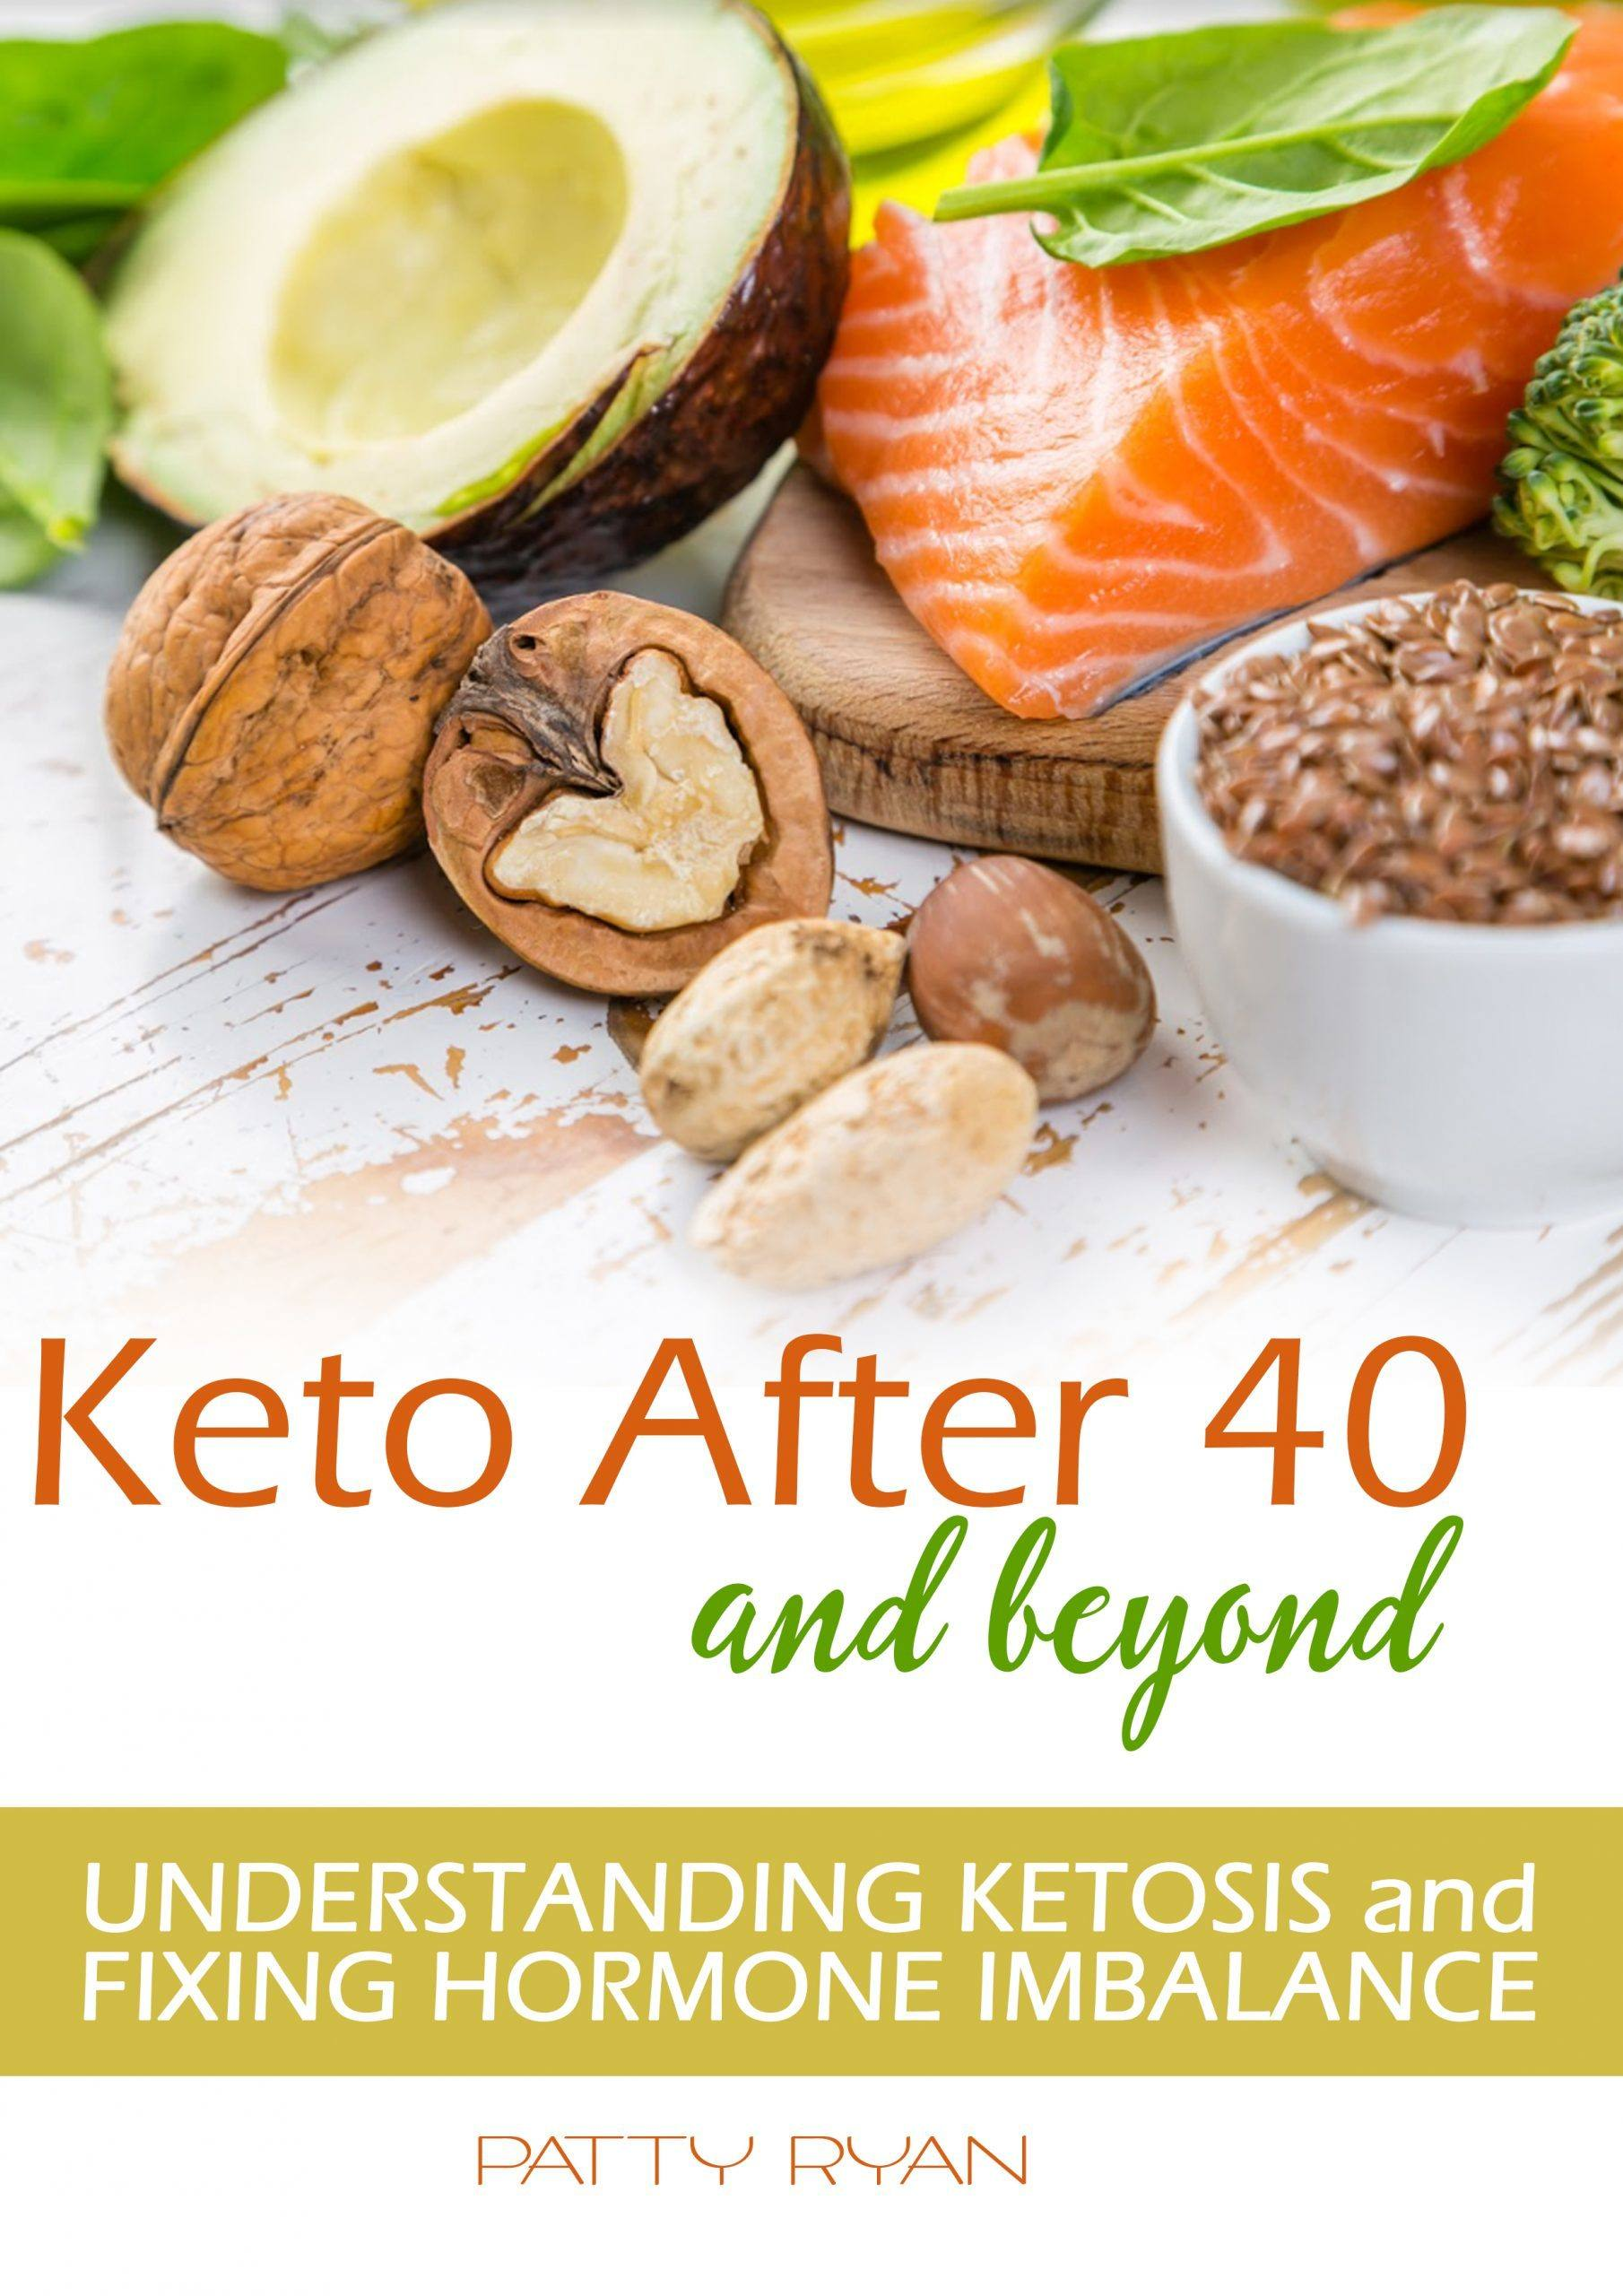 Keto After 40